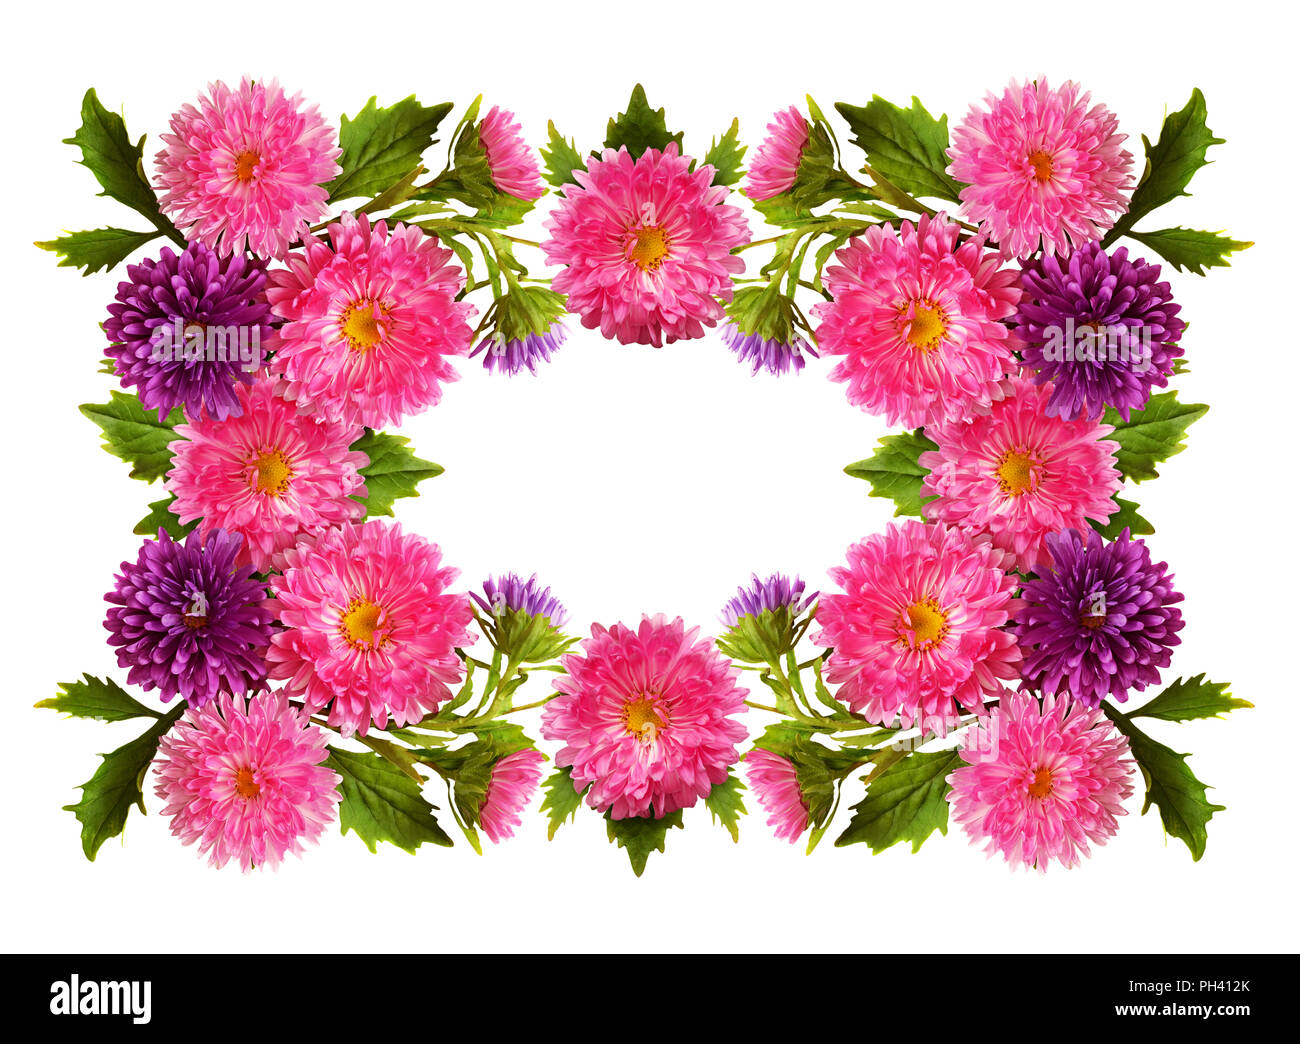 Aster Flowers In A Floral Frame Isolated On White Background Flat